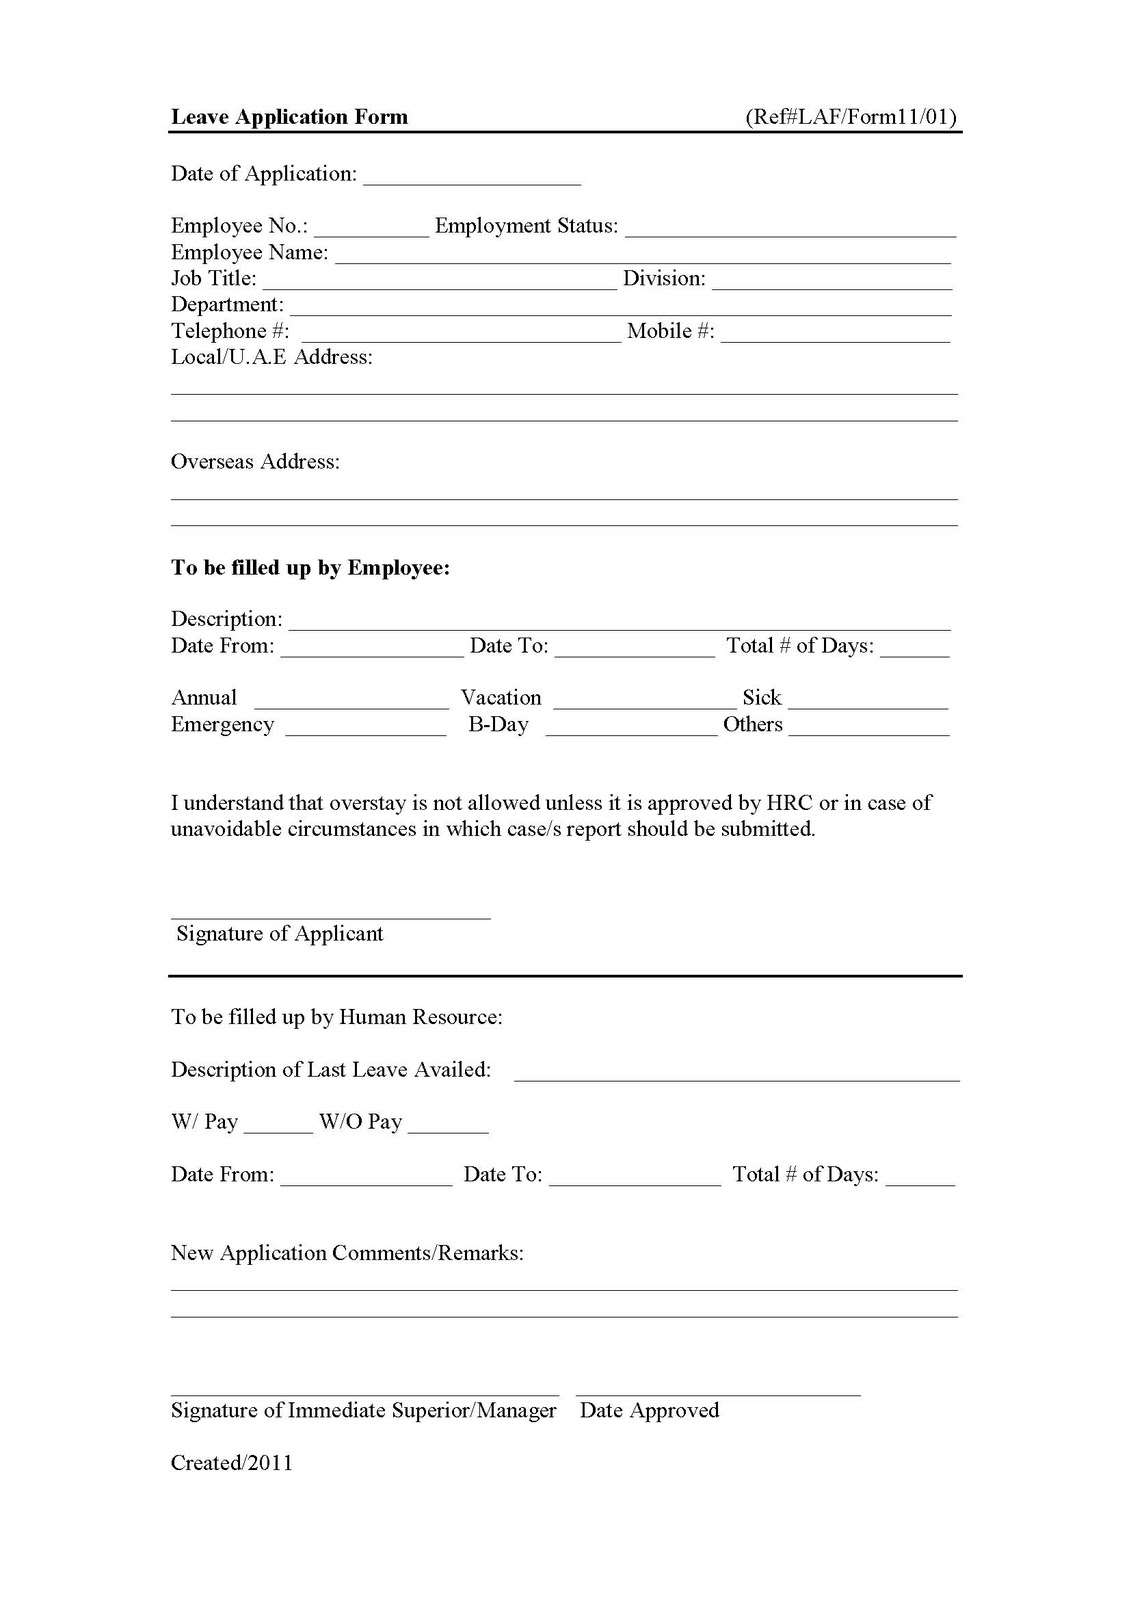 Application Form for Parental Leave Template - Hashdoc